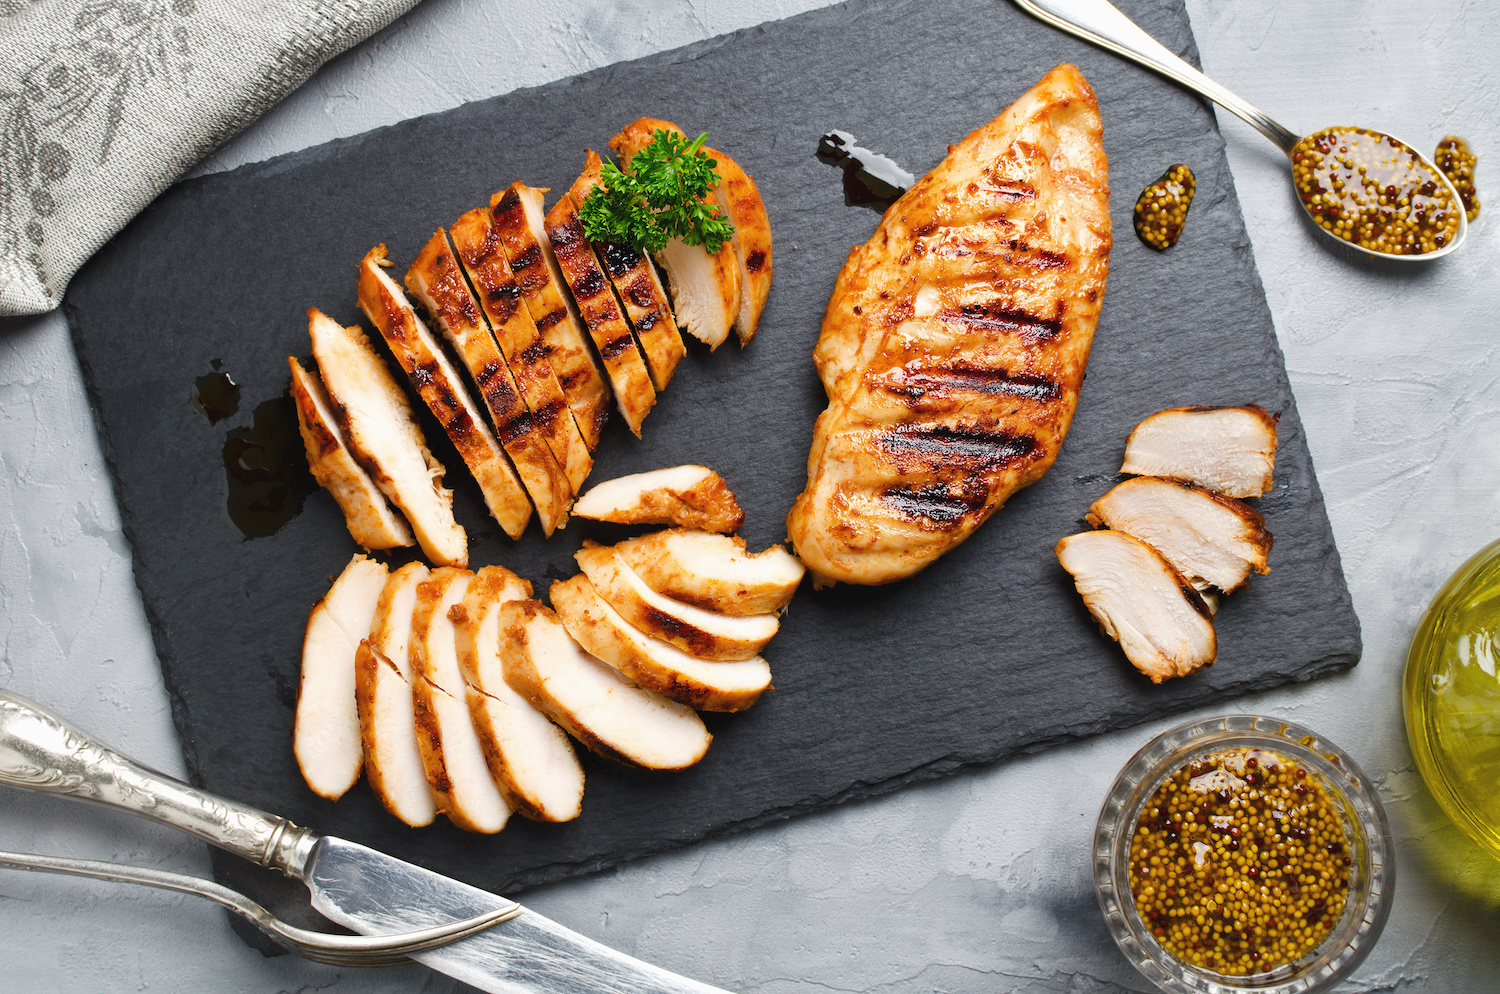 Grilled chicken breast white meat